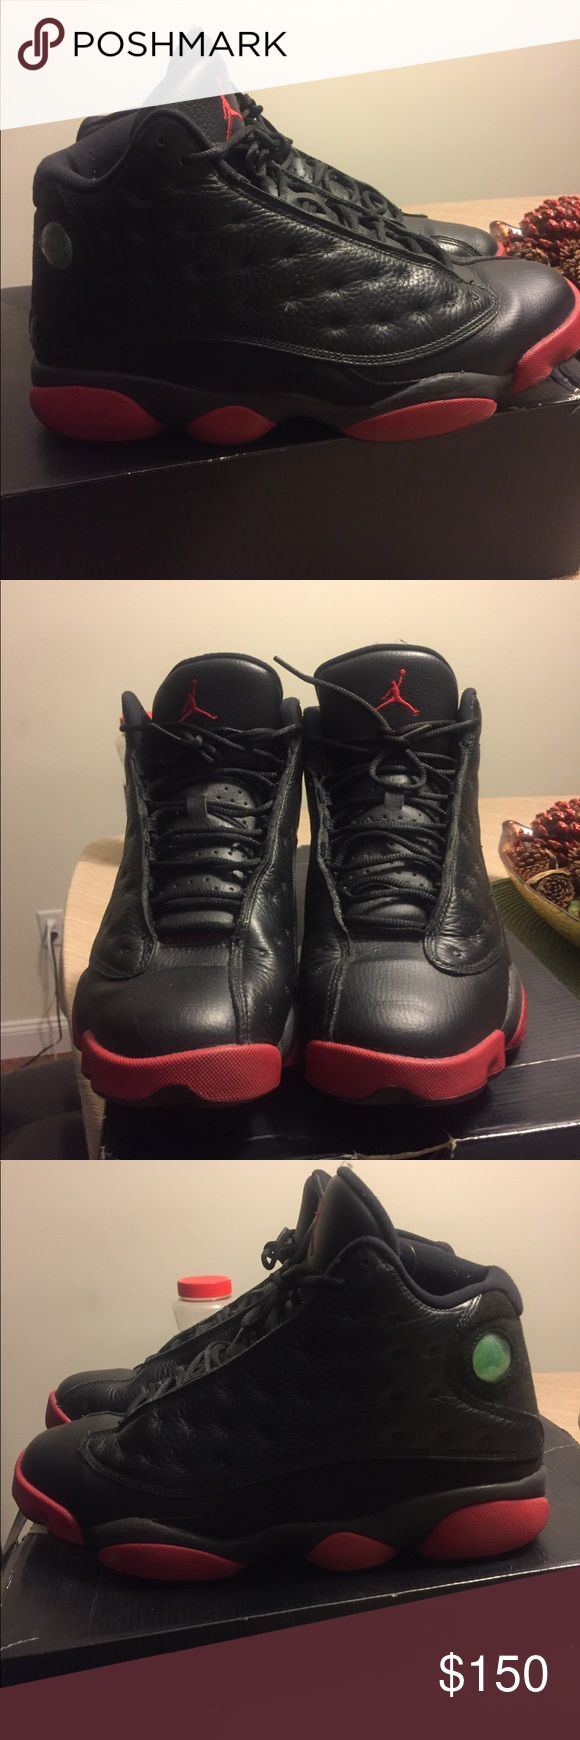 🔥🔥💯💯 dirty bred 13s💯💯🔥🔥 🔥🔥💯💯 dirty bred 13s💯💯🔥🔥 Do not buy. Trade for black cats @tyrone0505 Jordan Shoes Sneakers